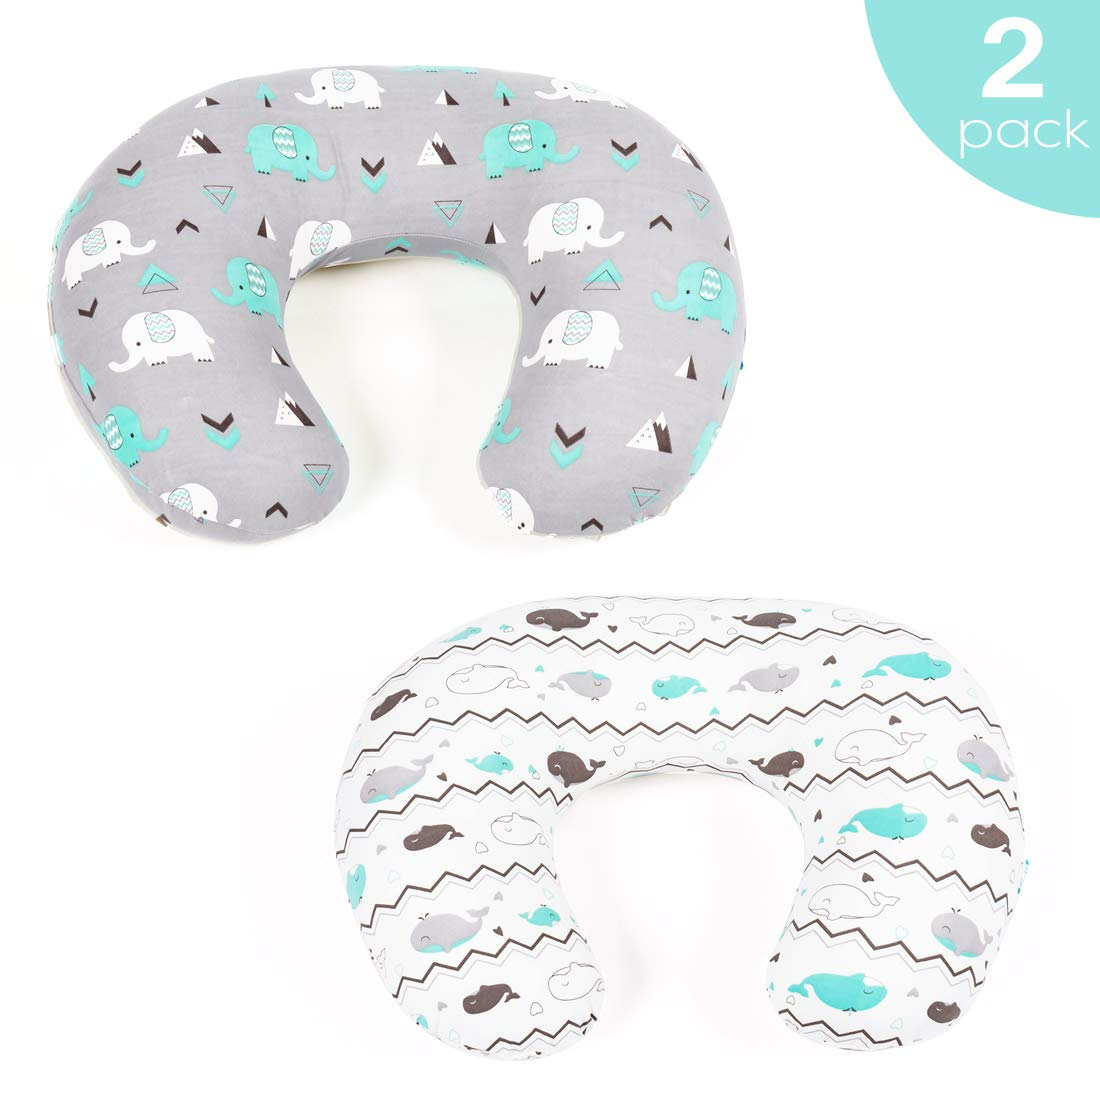 Stretchy Fitted Nursing Pillow Cover-Brolex 2 Pack Breastfeeding Pillow Slipcover for Nursing Mom's Unisex Boys Girls,Ultra Soft,Snug Fit,Elephant & Whale by BROLEX